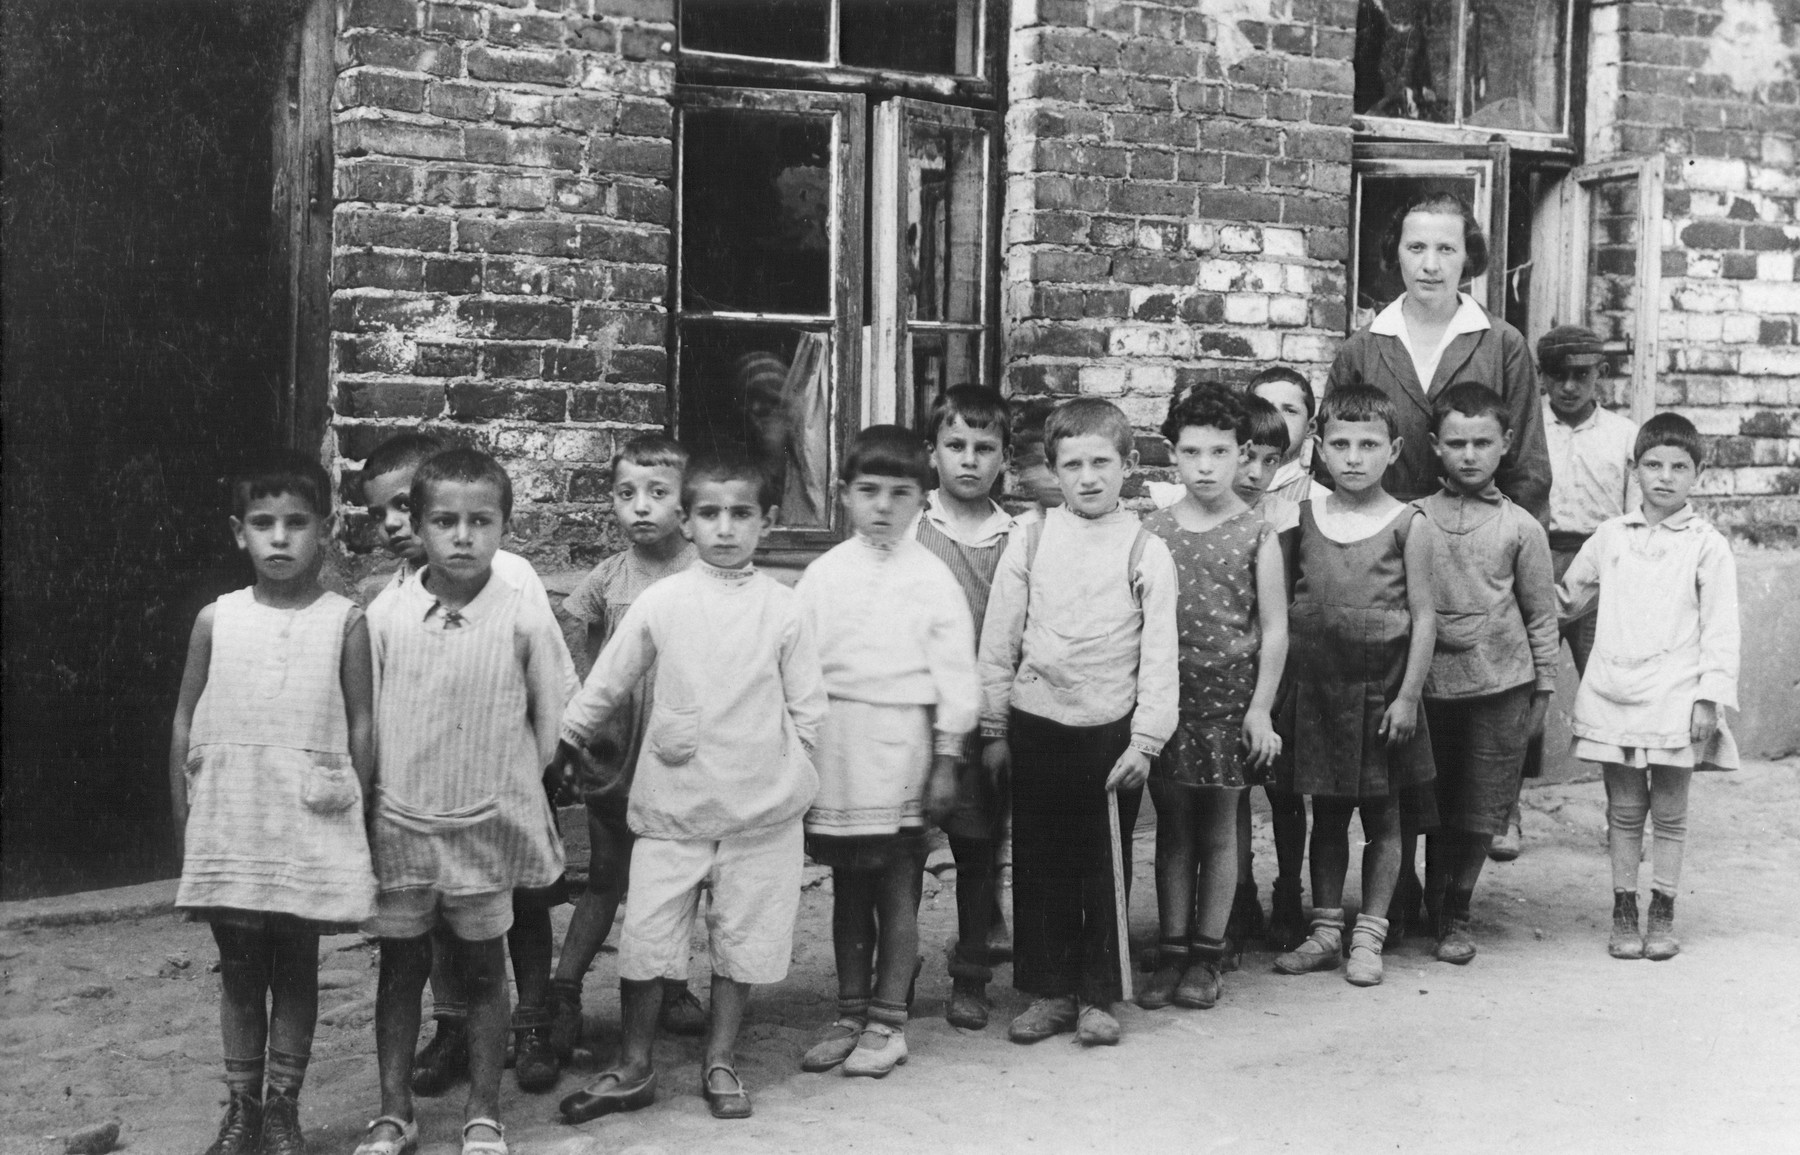 Children from the Jewish kindergarten in Kaunas (located at 9 Mapu Street) pose outside their school before leaving on an outing.